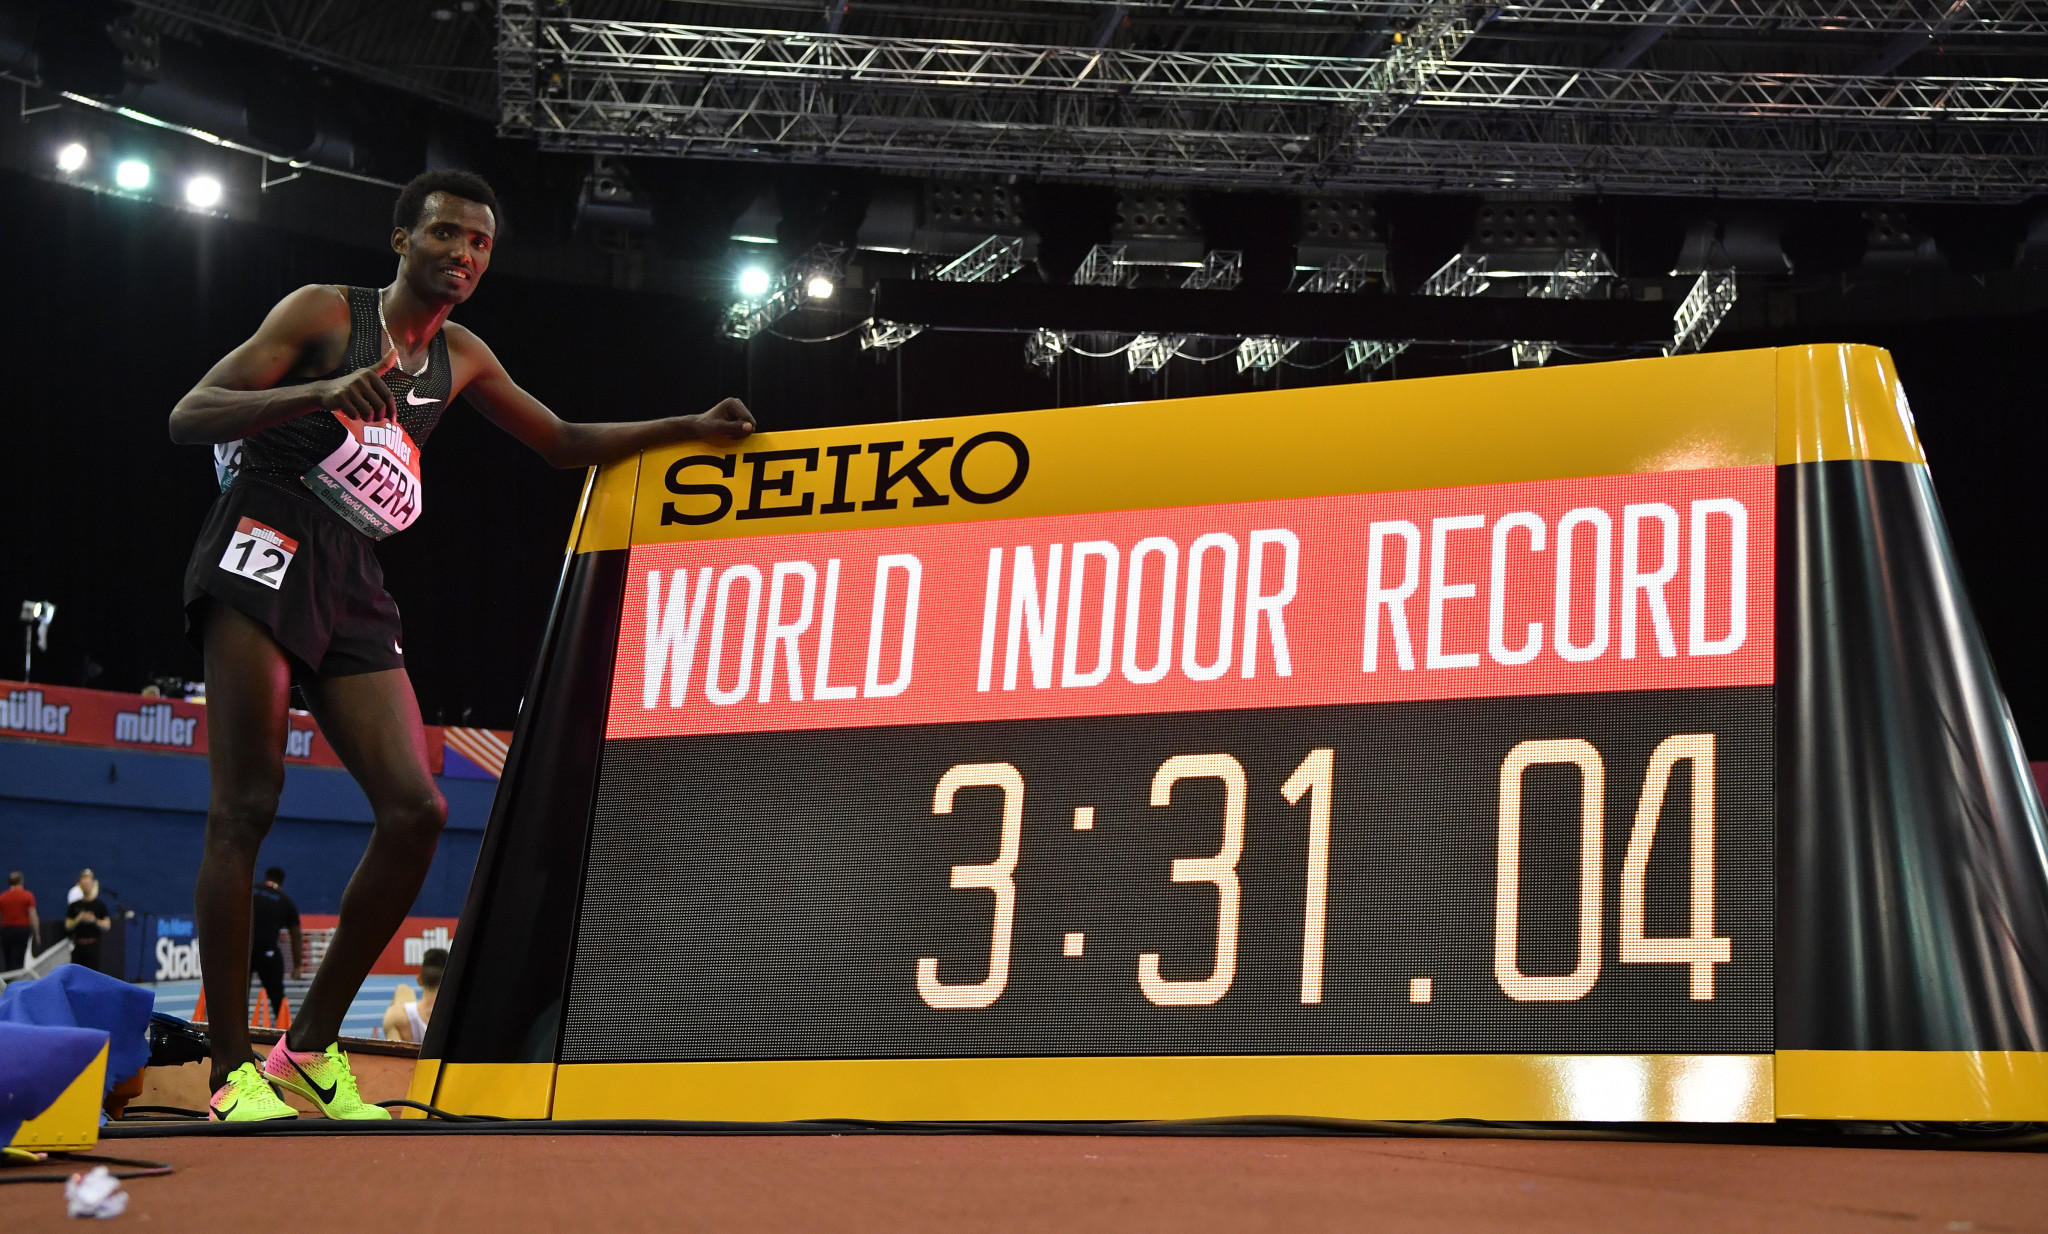 Samuel Tefera set a world indoor record in the men's 1500m at the World Indoor Tour in Birmingham ©Getty Images